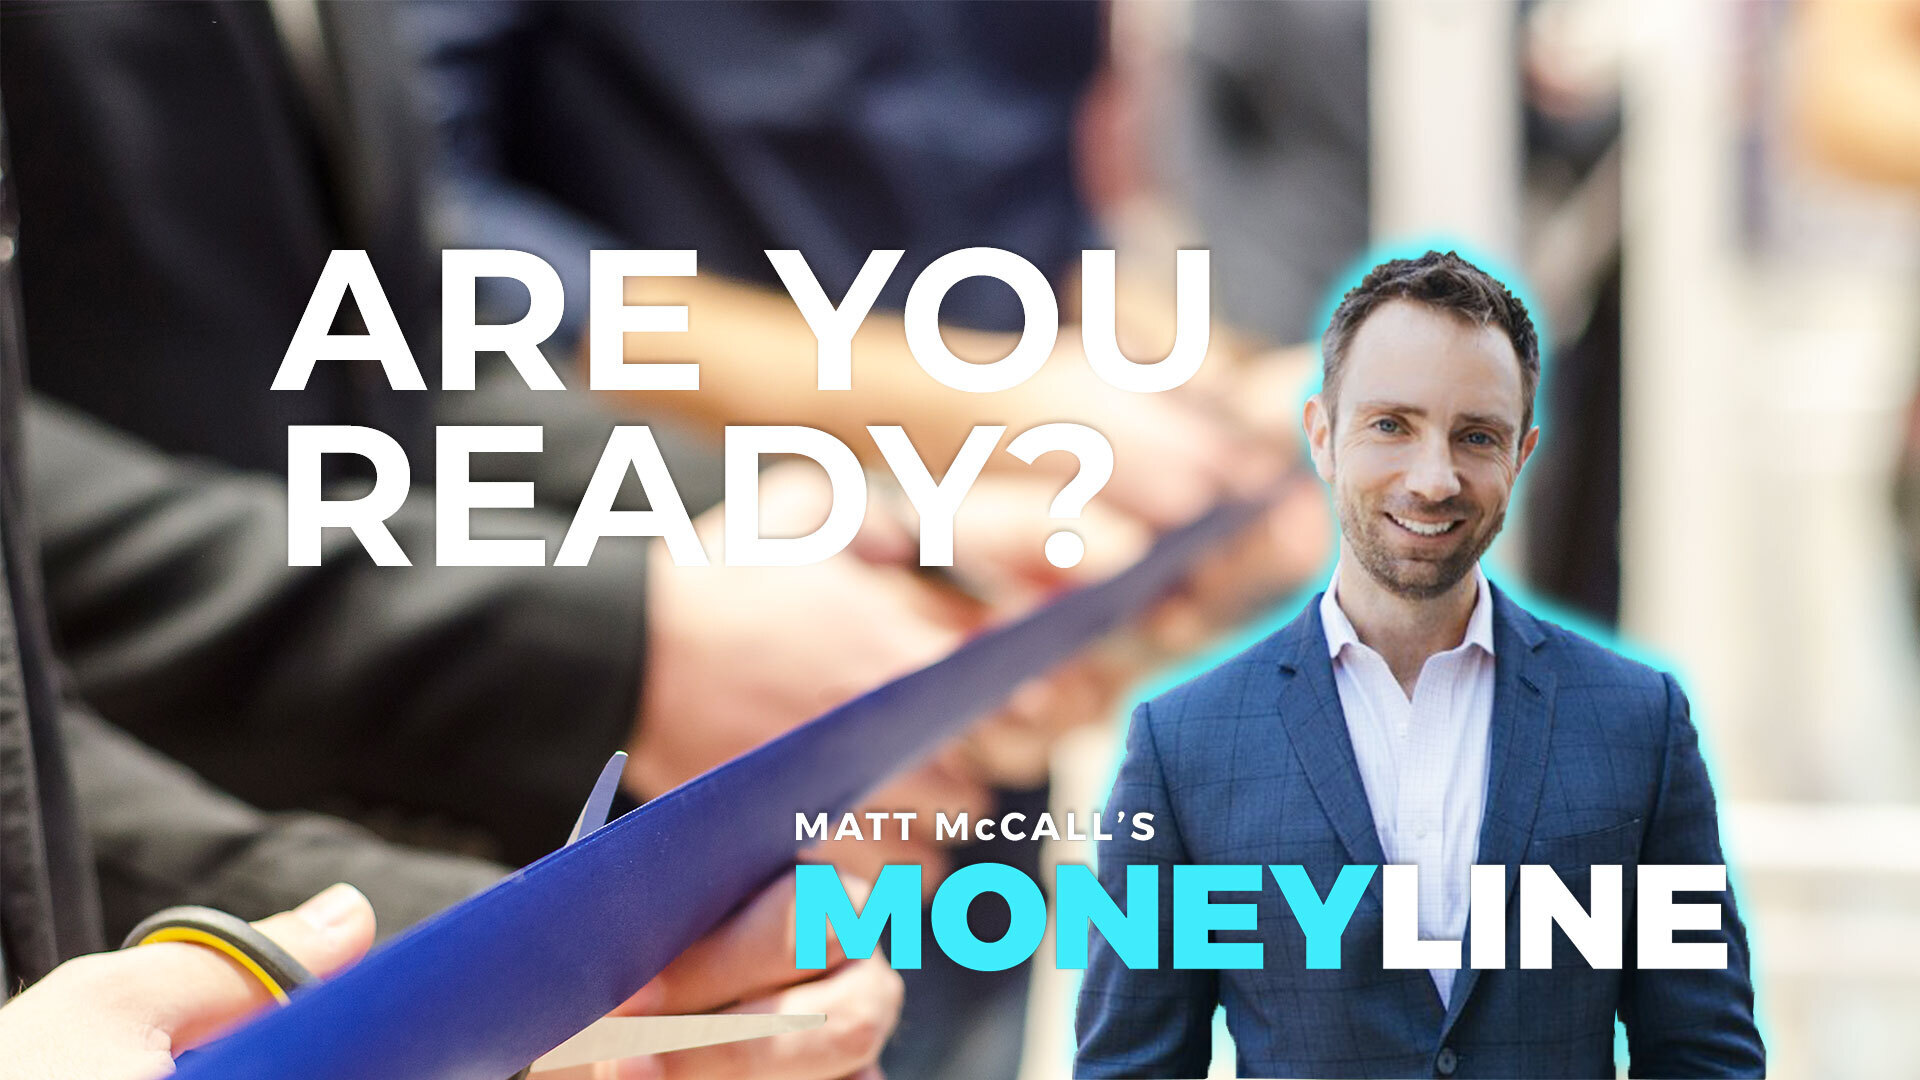 Matt McCall's Moneyline: The Grand Re-Opening of the Global is Coming... Are You Ready?